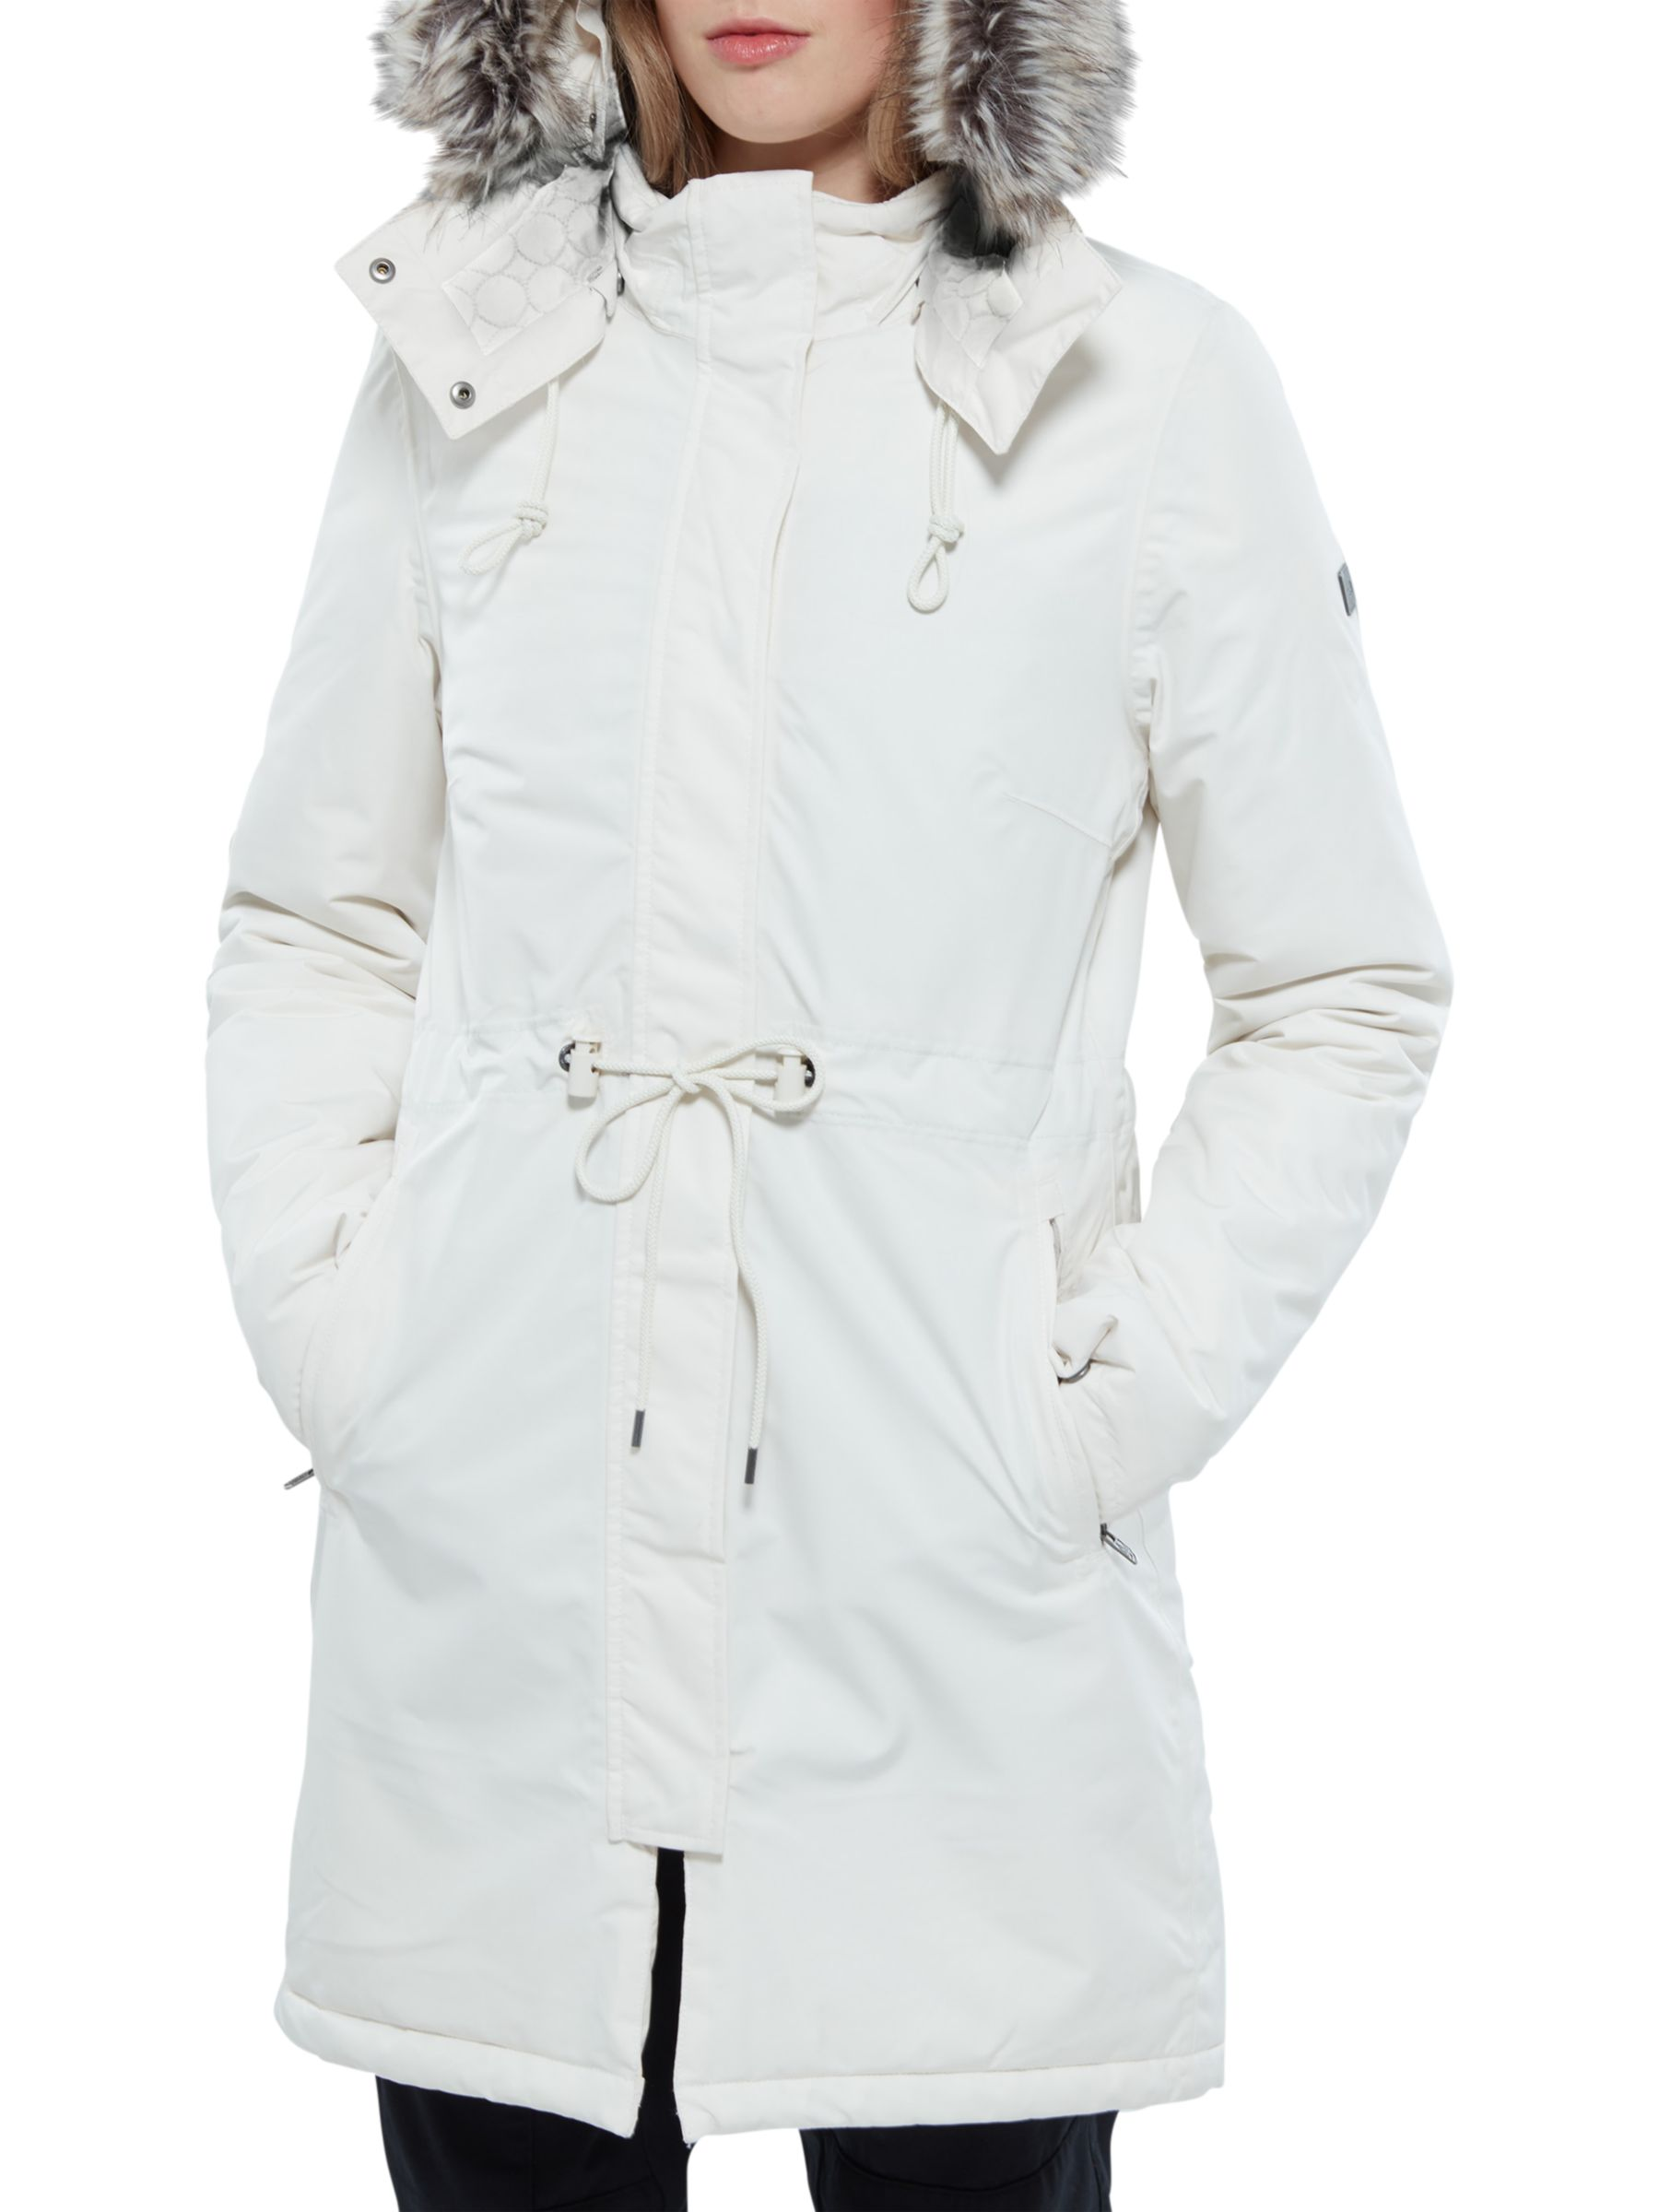 The North Face The North Face Zaneck Hooded Women's Parka Jacket, Vintage White